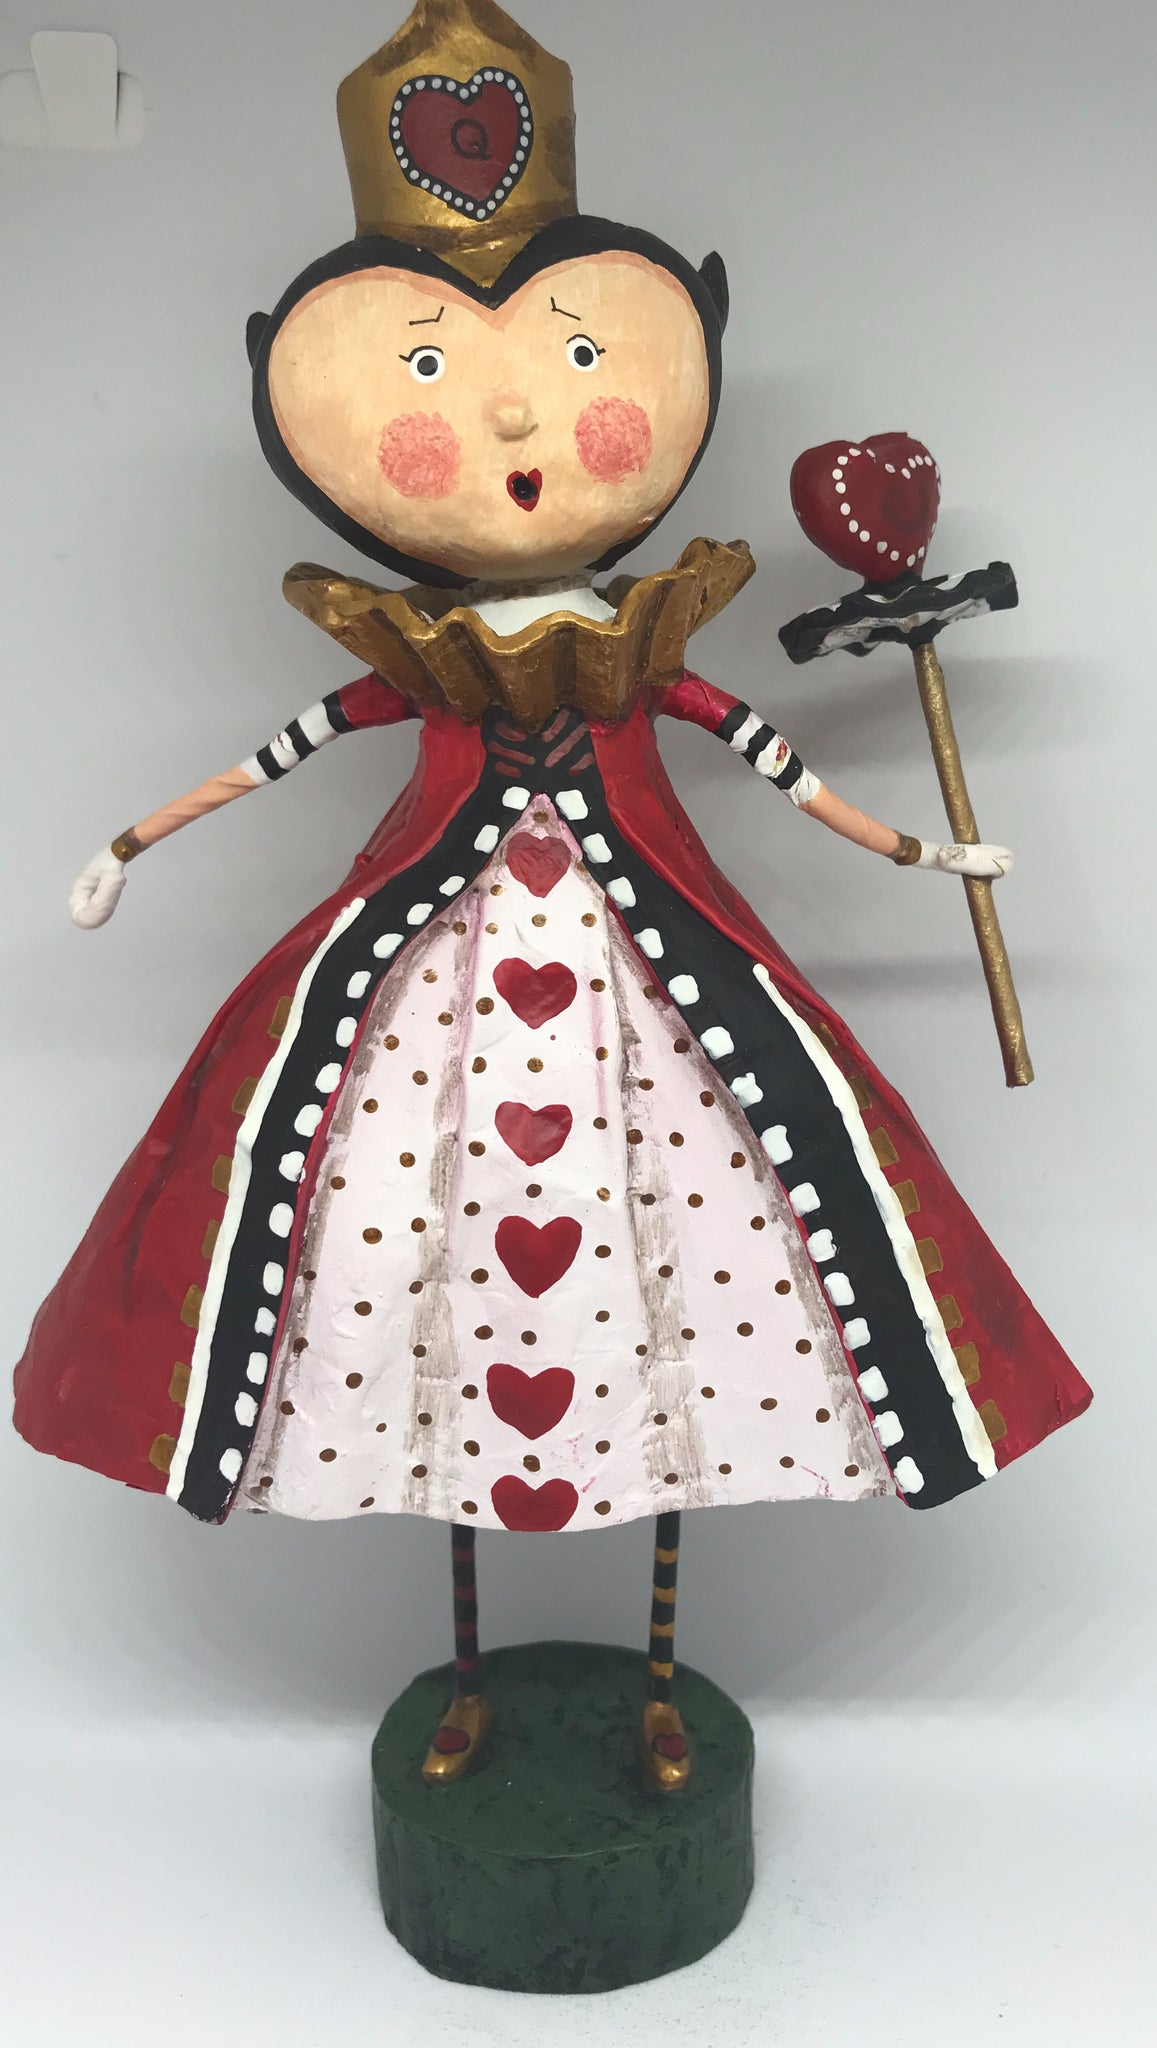 Queen of Hearts by Lori Mitchell - Rustic Lane Boutique